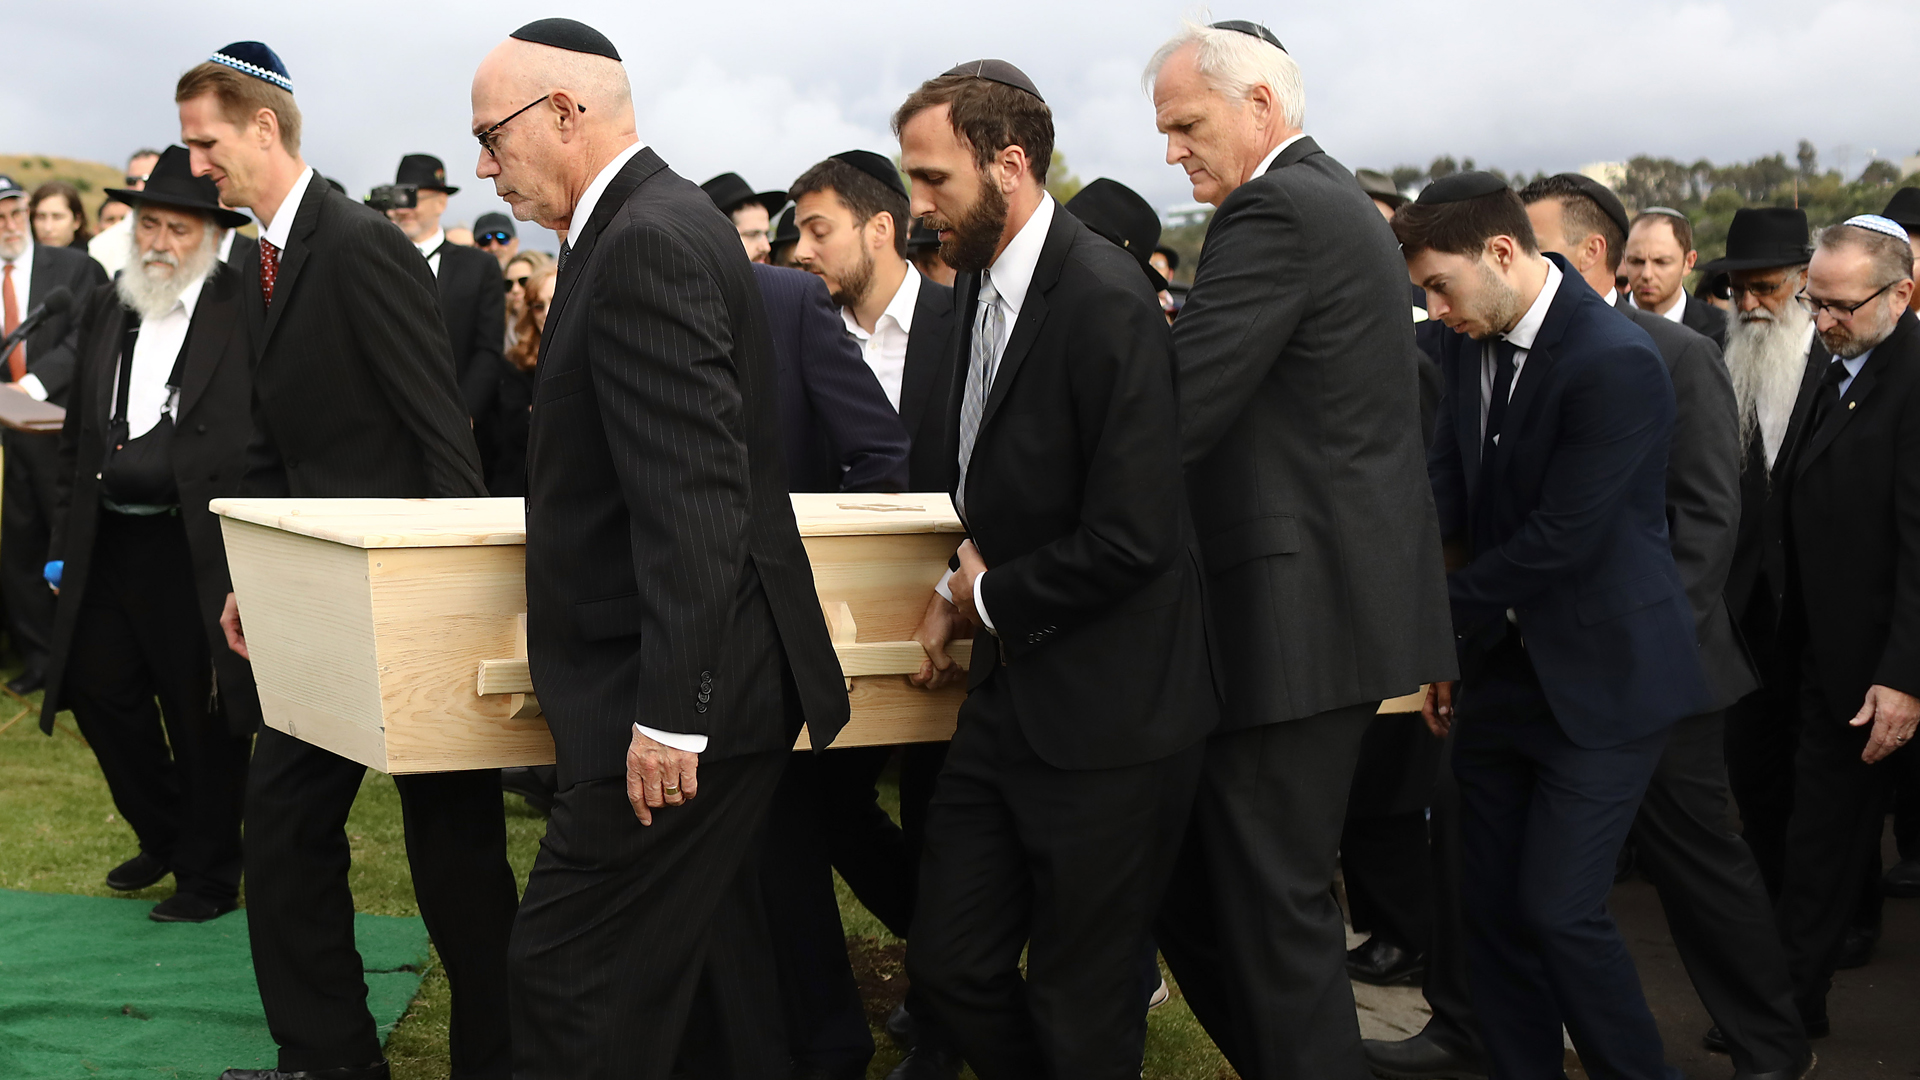 Pallbearers carry the casket of Chabad of Poway synagogue shooting victim Lori Gilbert Kaye during a graveside service on April 29, 2019, in San Diego, California. (Credit: Mario Tama/Getty Images)